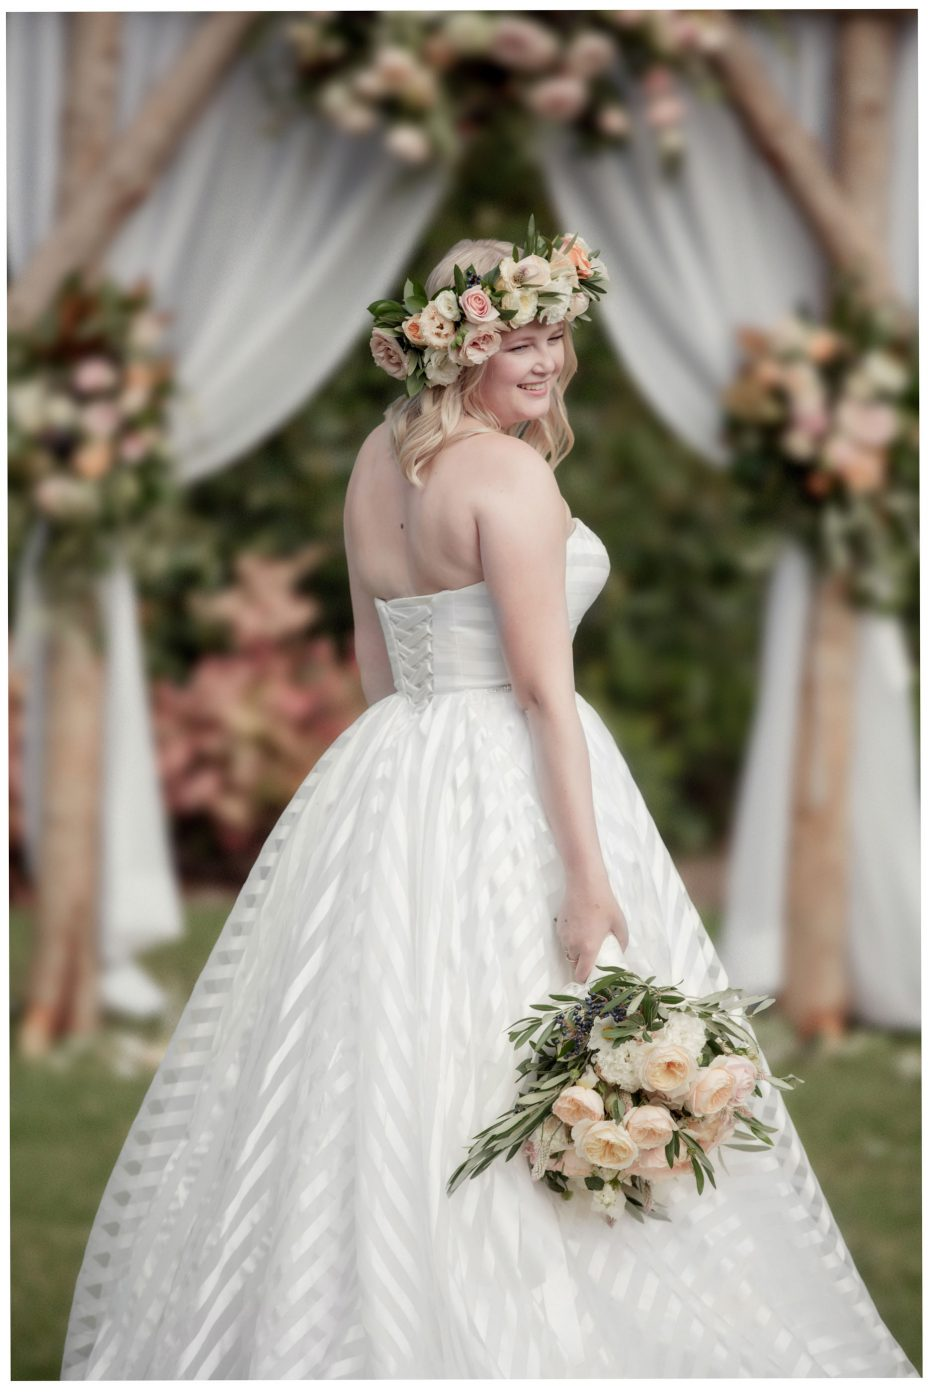 Auckland bride wearing flower crown and holding her wedding bouquet infront of her flower arch